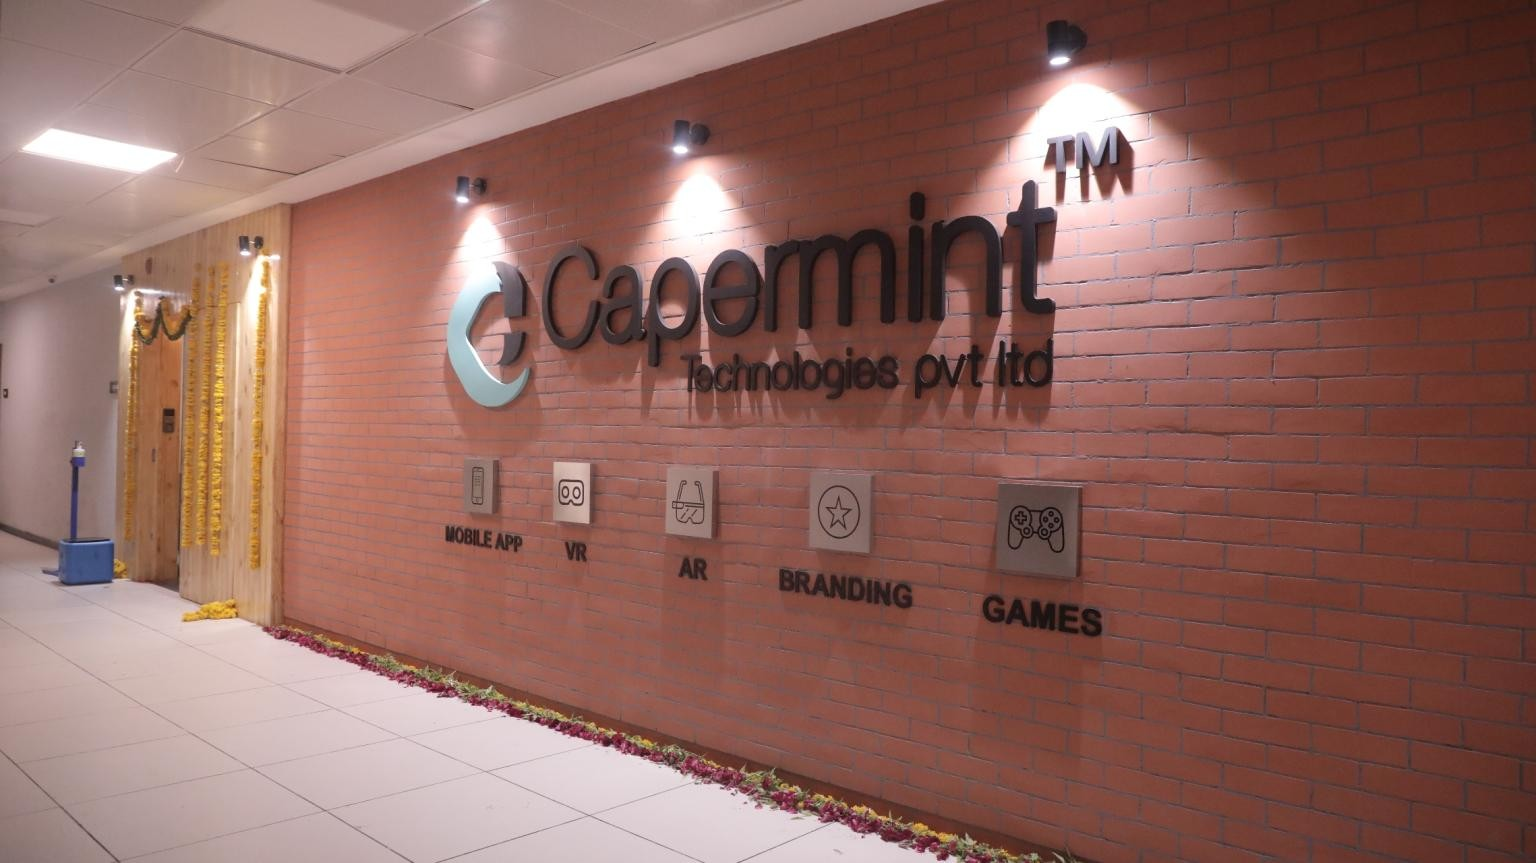 Capermint